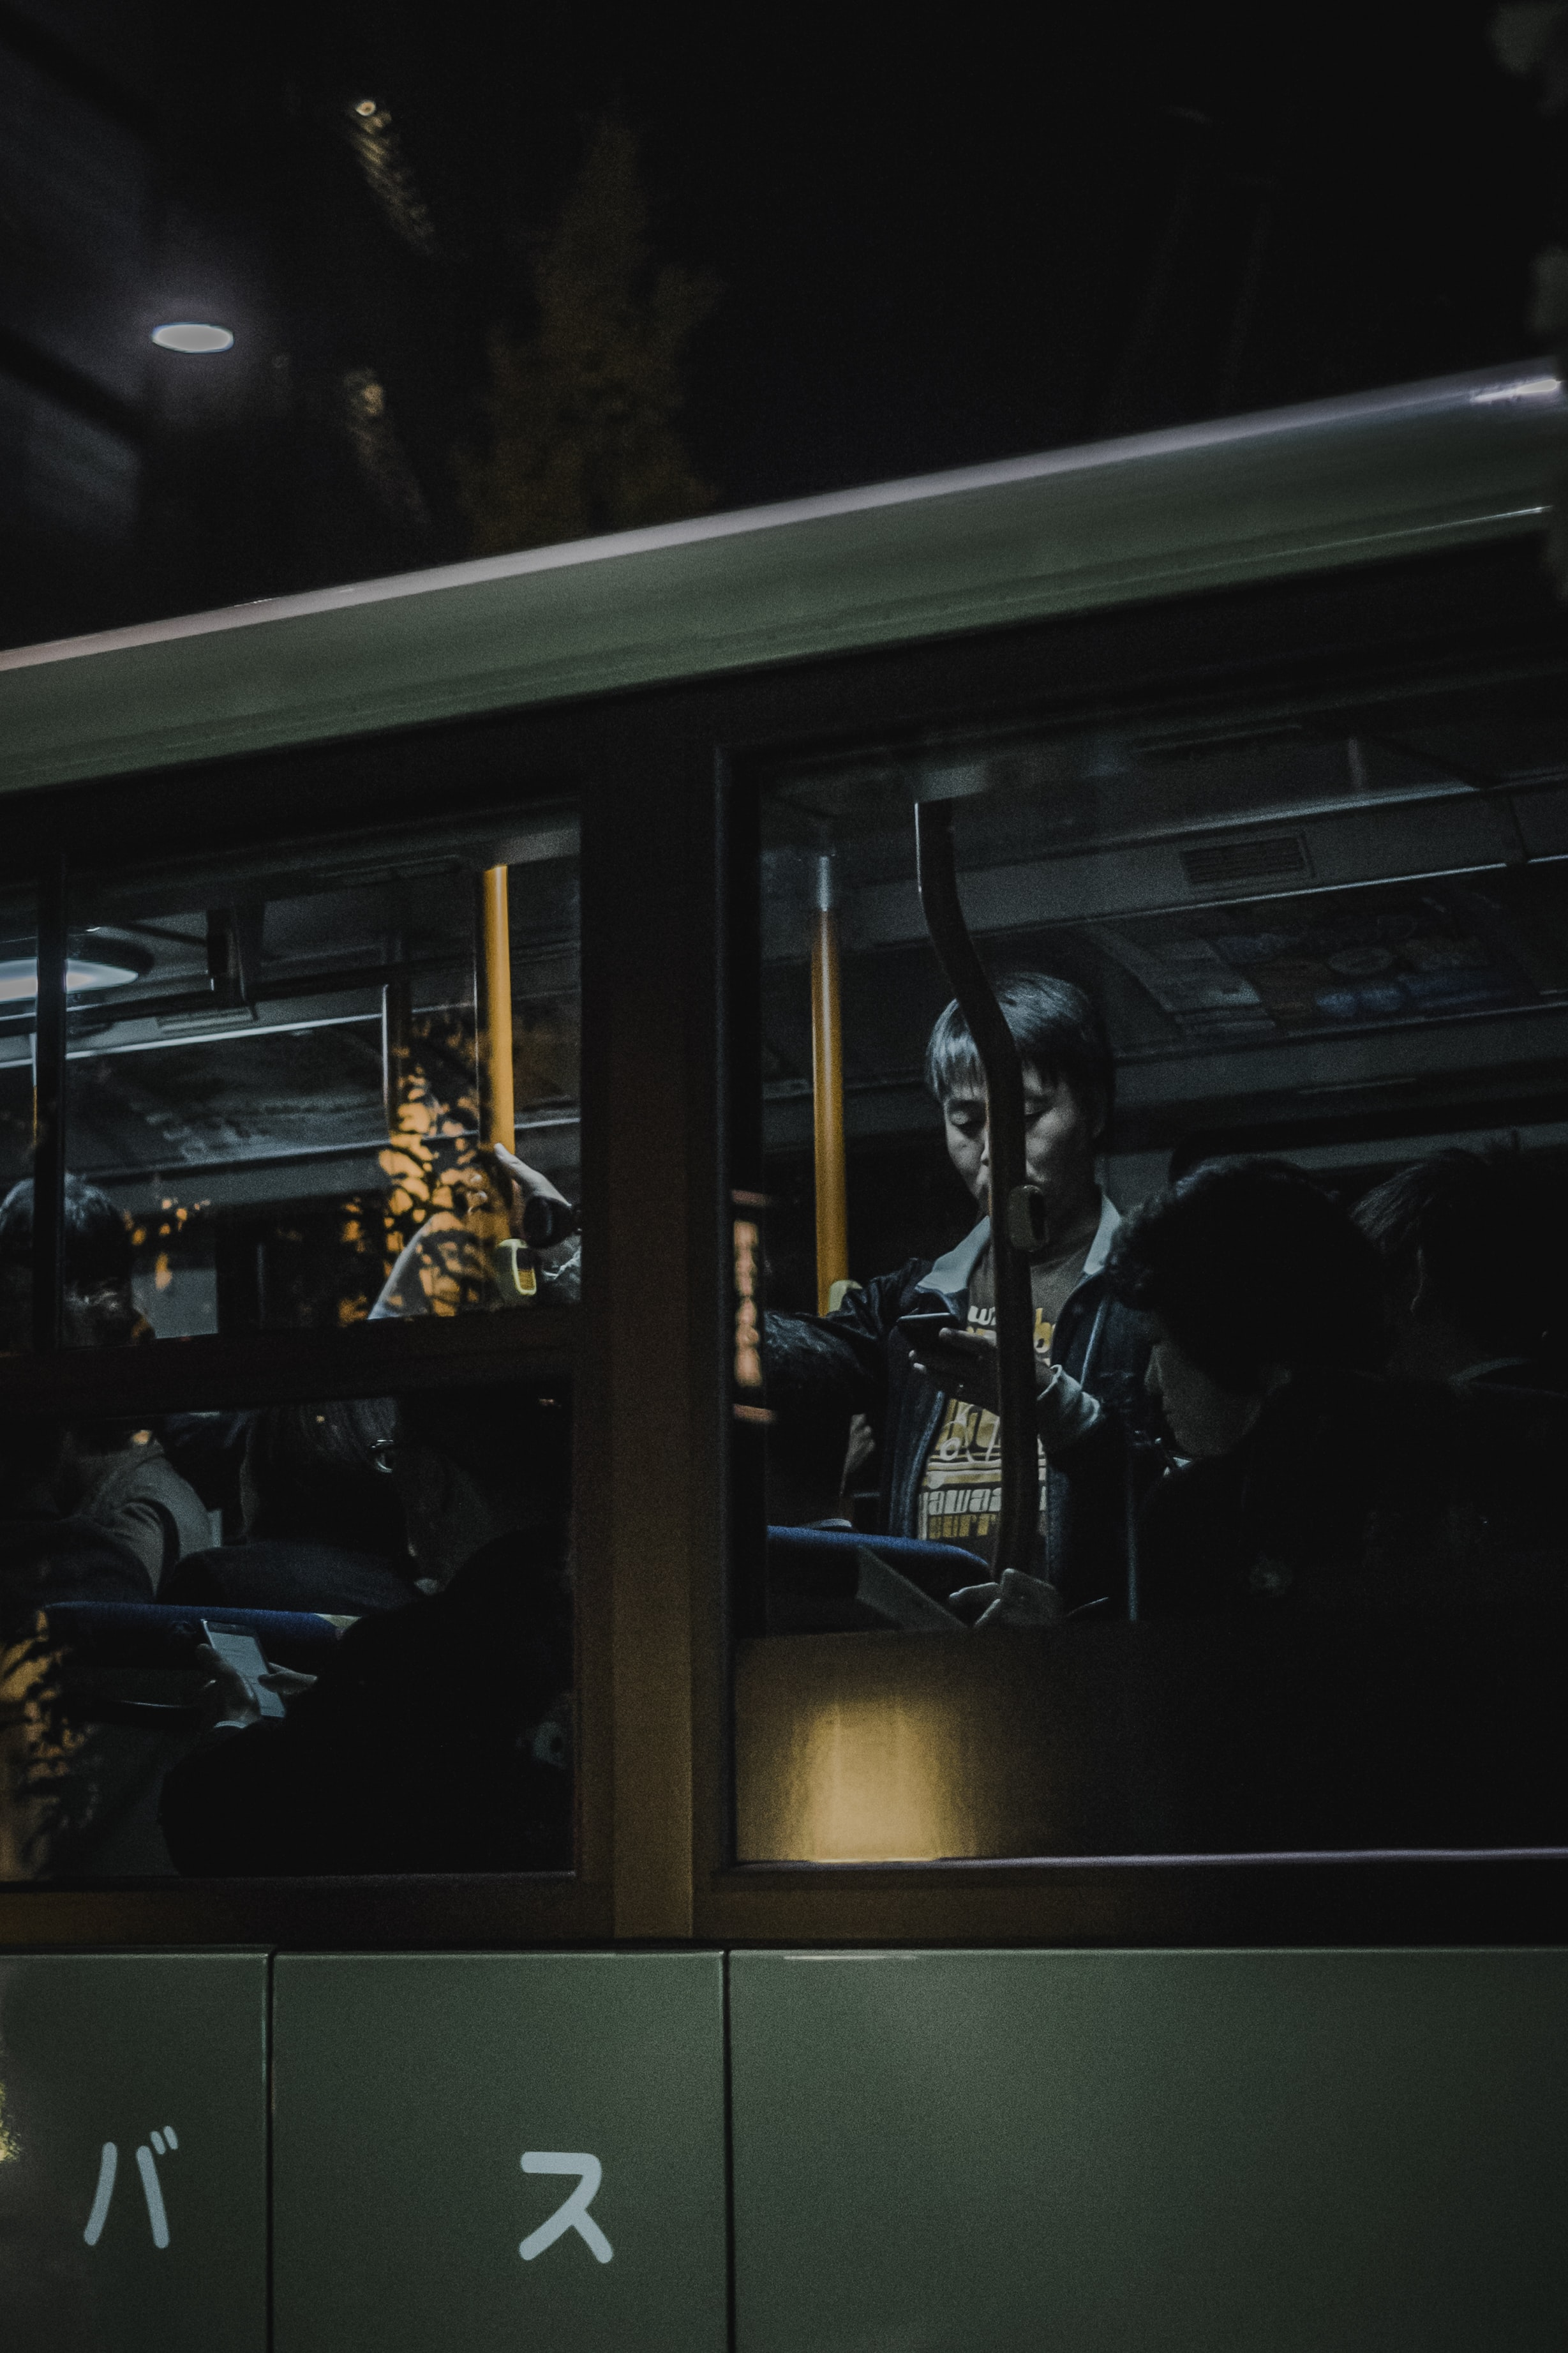 A man using a phone seen through the window of a bus driving by